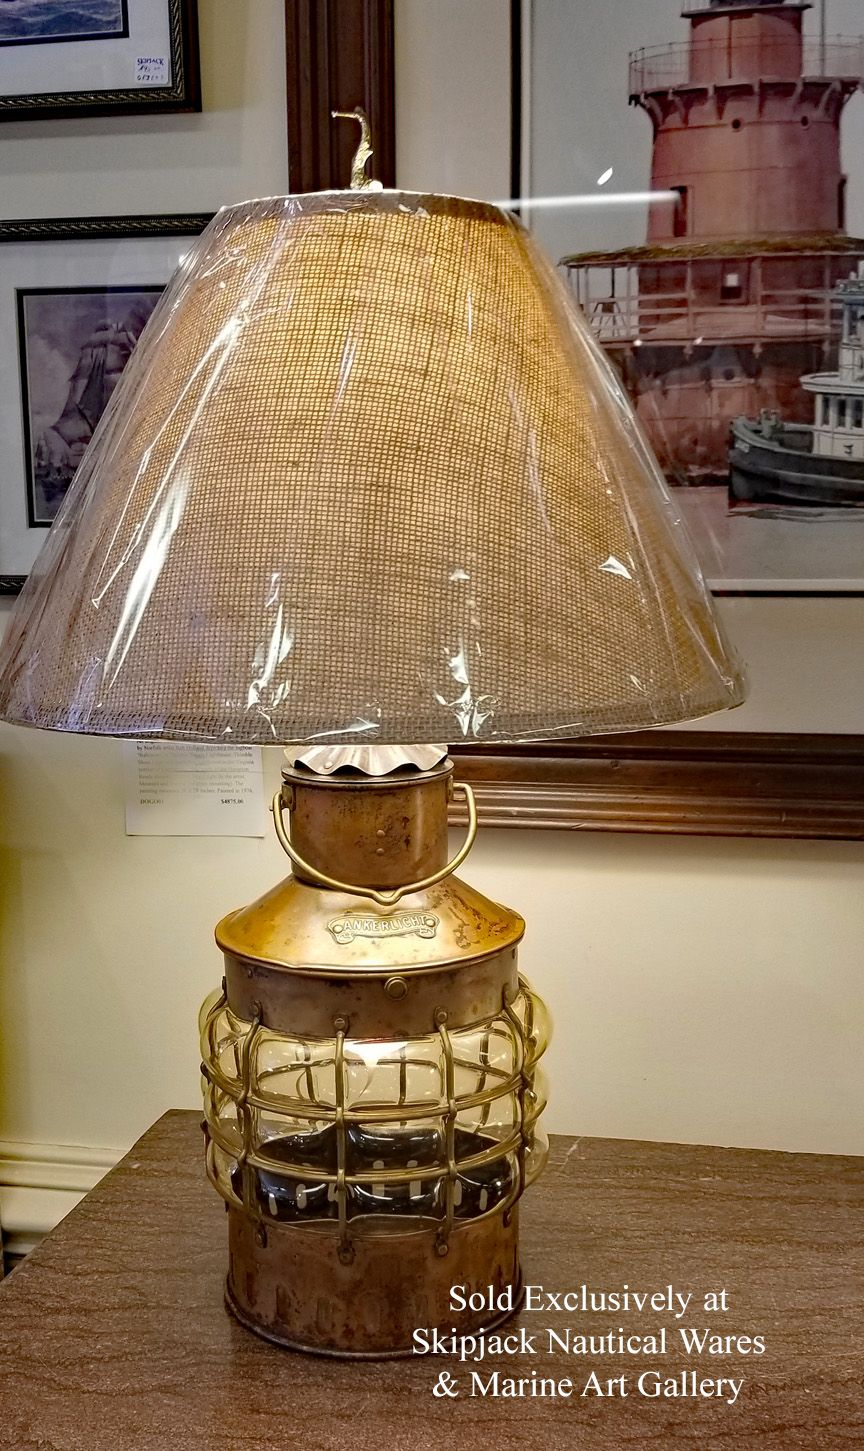 A Vintage Den Haan Rotterdam Copper Anchor Lantern That We Have Repurposed Into A Table Lamp The Lantern Features An Oxidized A Nautical Lamps Lamp Table Lamp